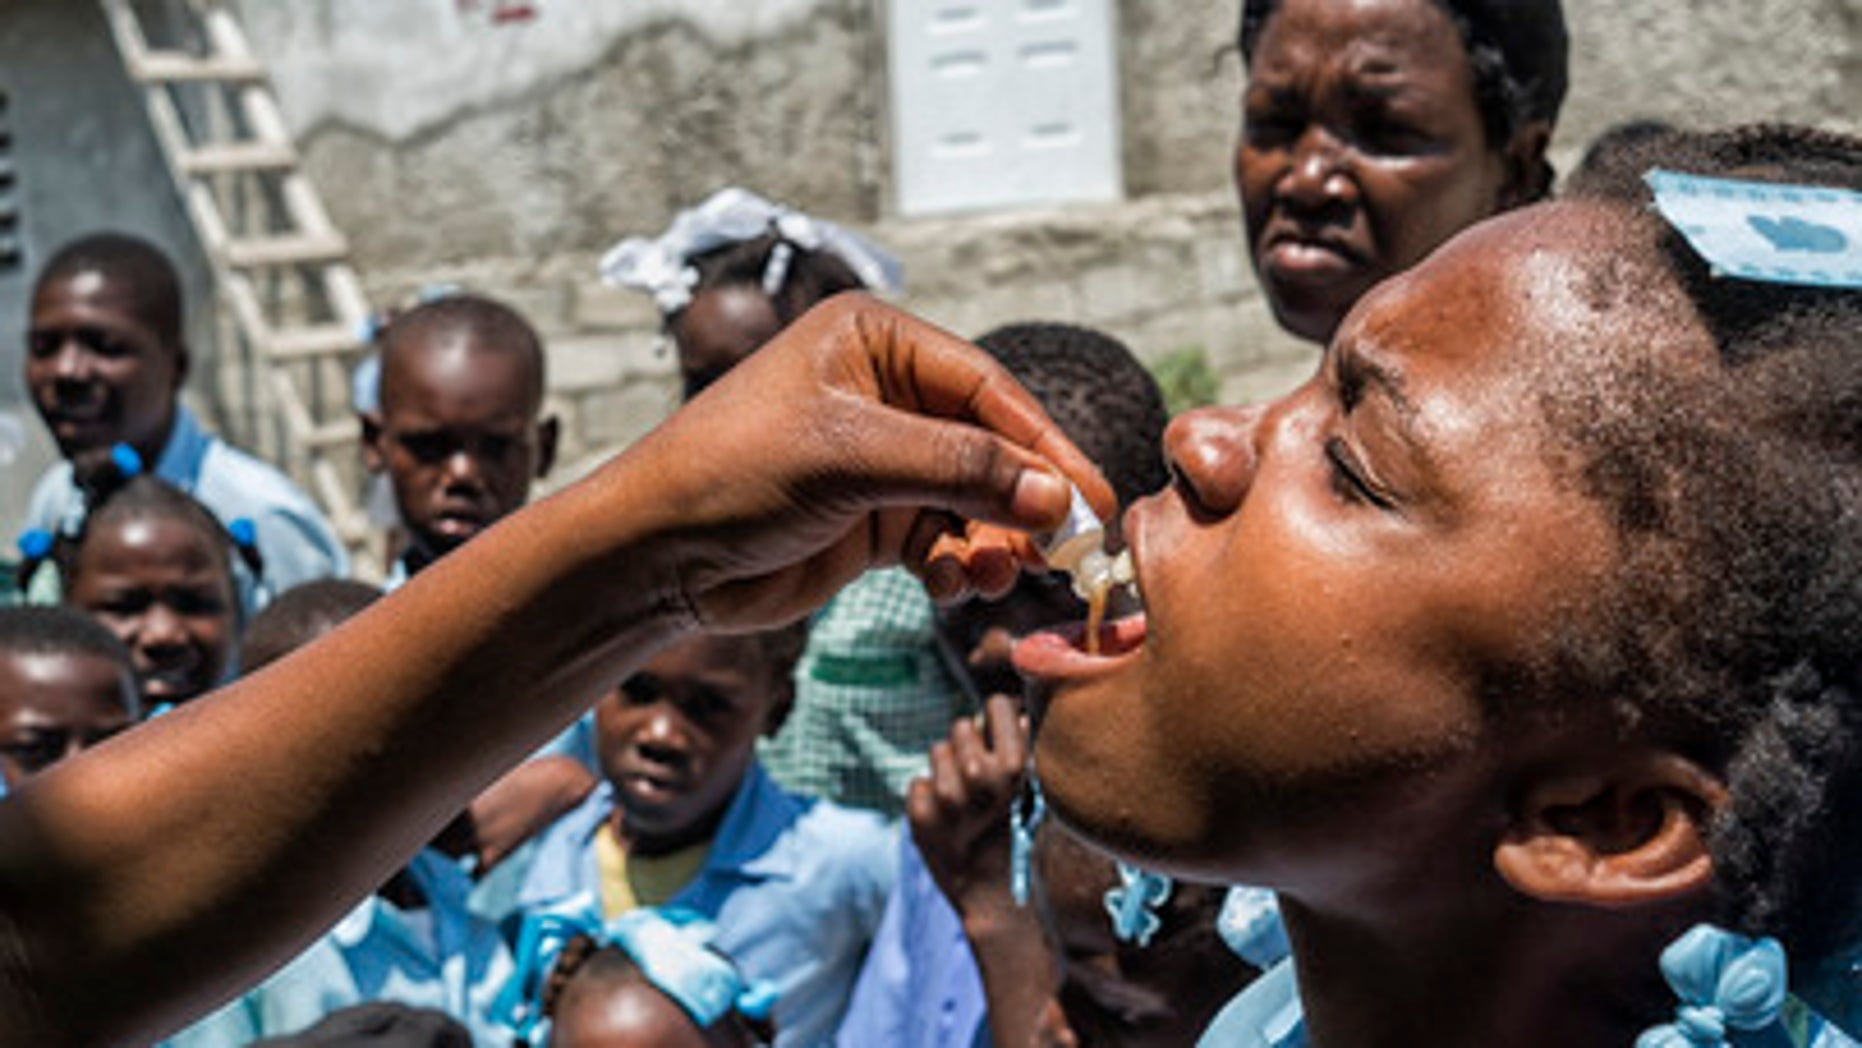 UNICEF, together with other agencies, conducts the first phase of a cholera vaccination campaign in Arcahaie, Haiti, that will target 400,000 people in 2016. (UN Photo/Logan Abassi)